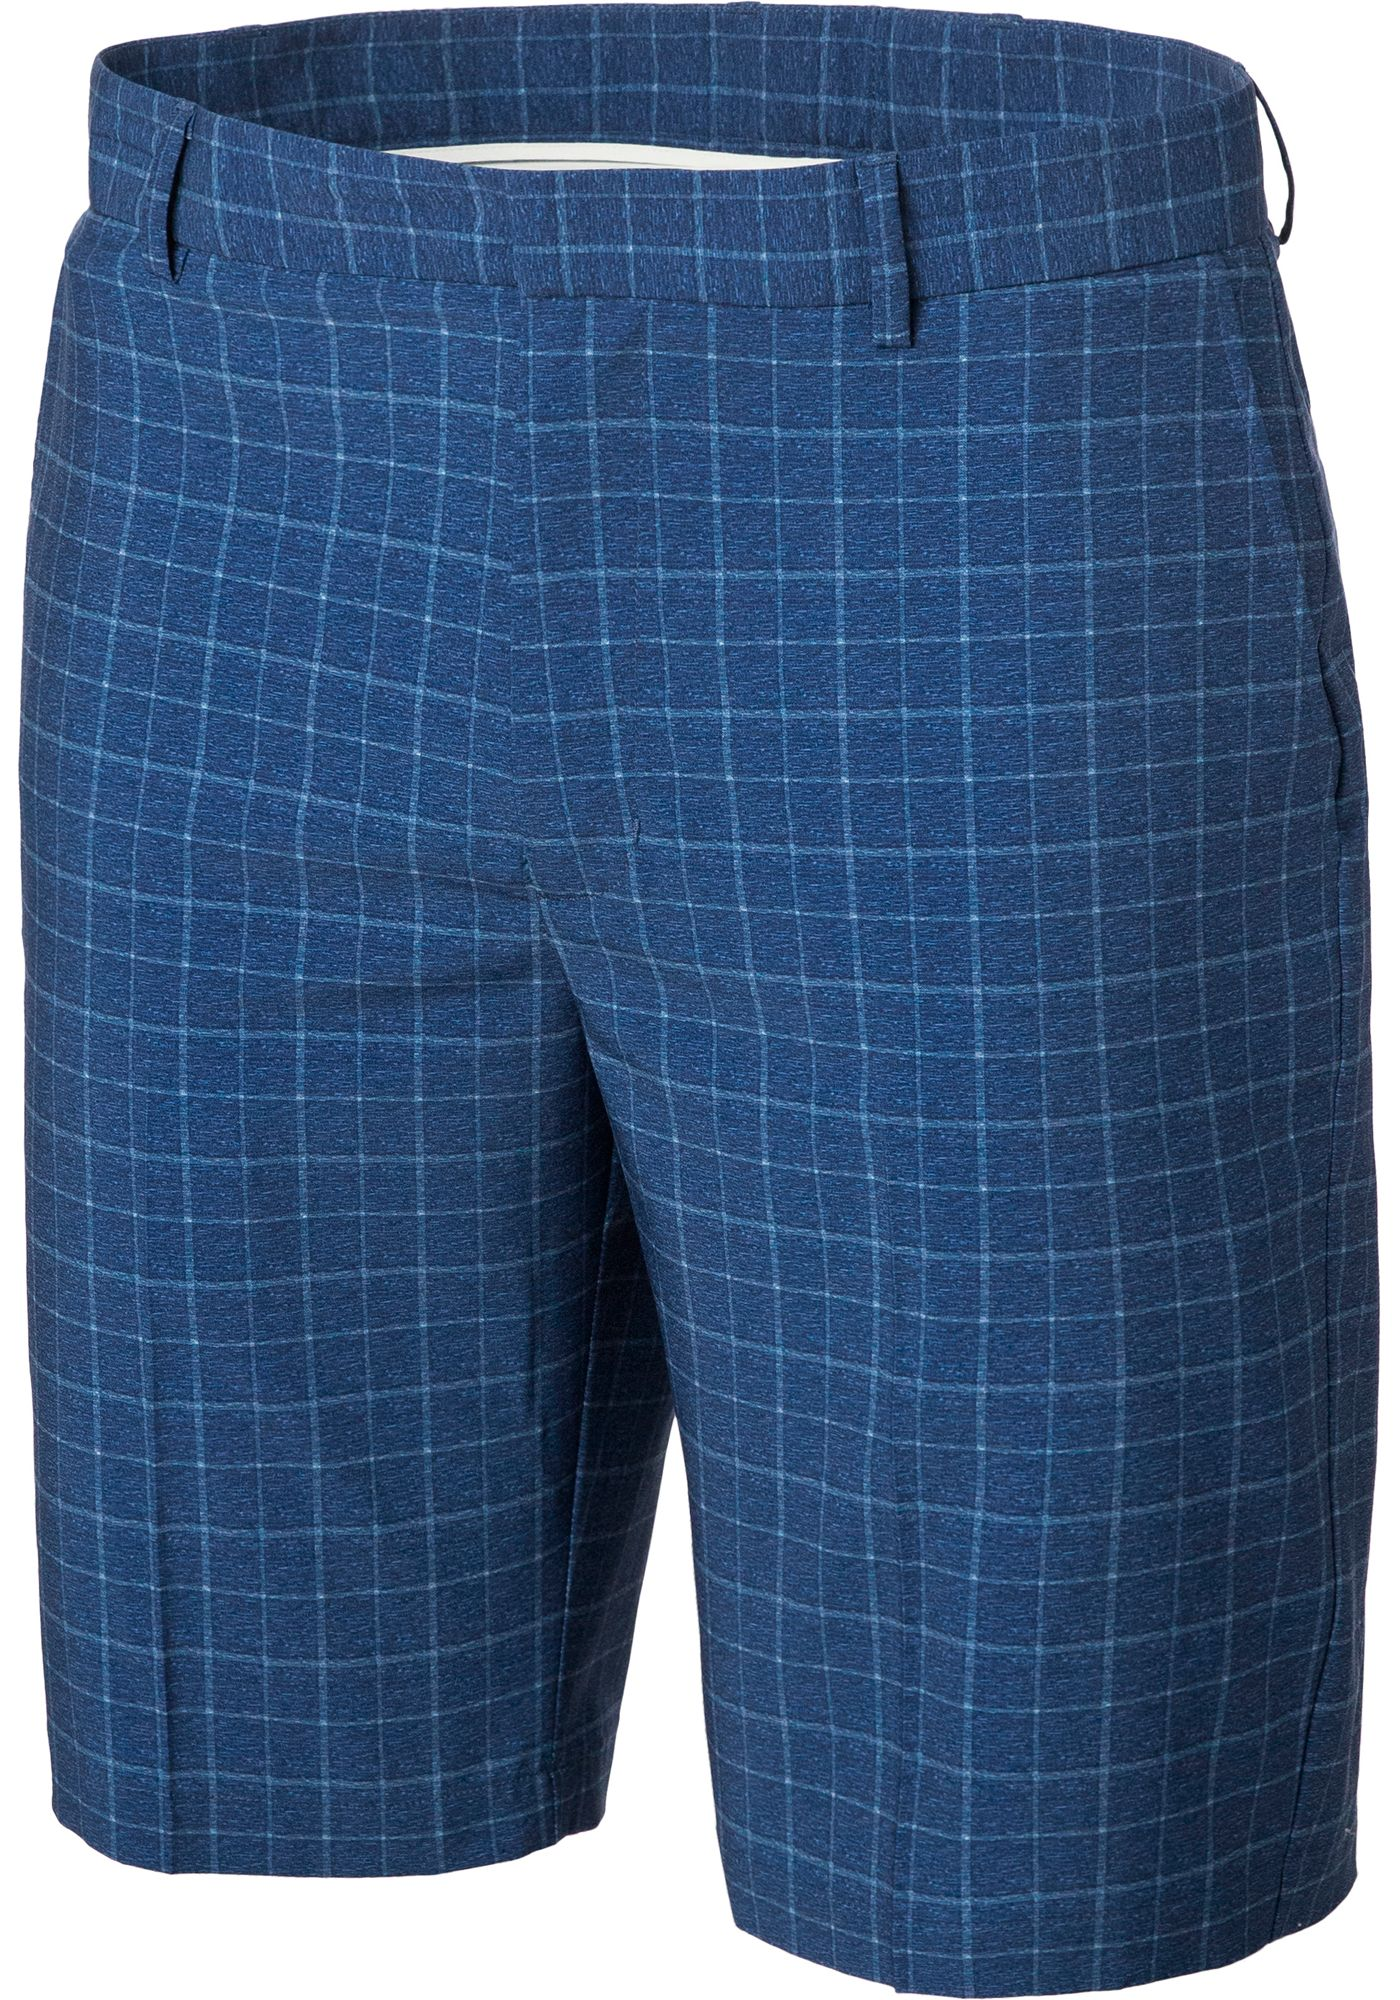 Walter Hagen Windowpane Shorts